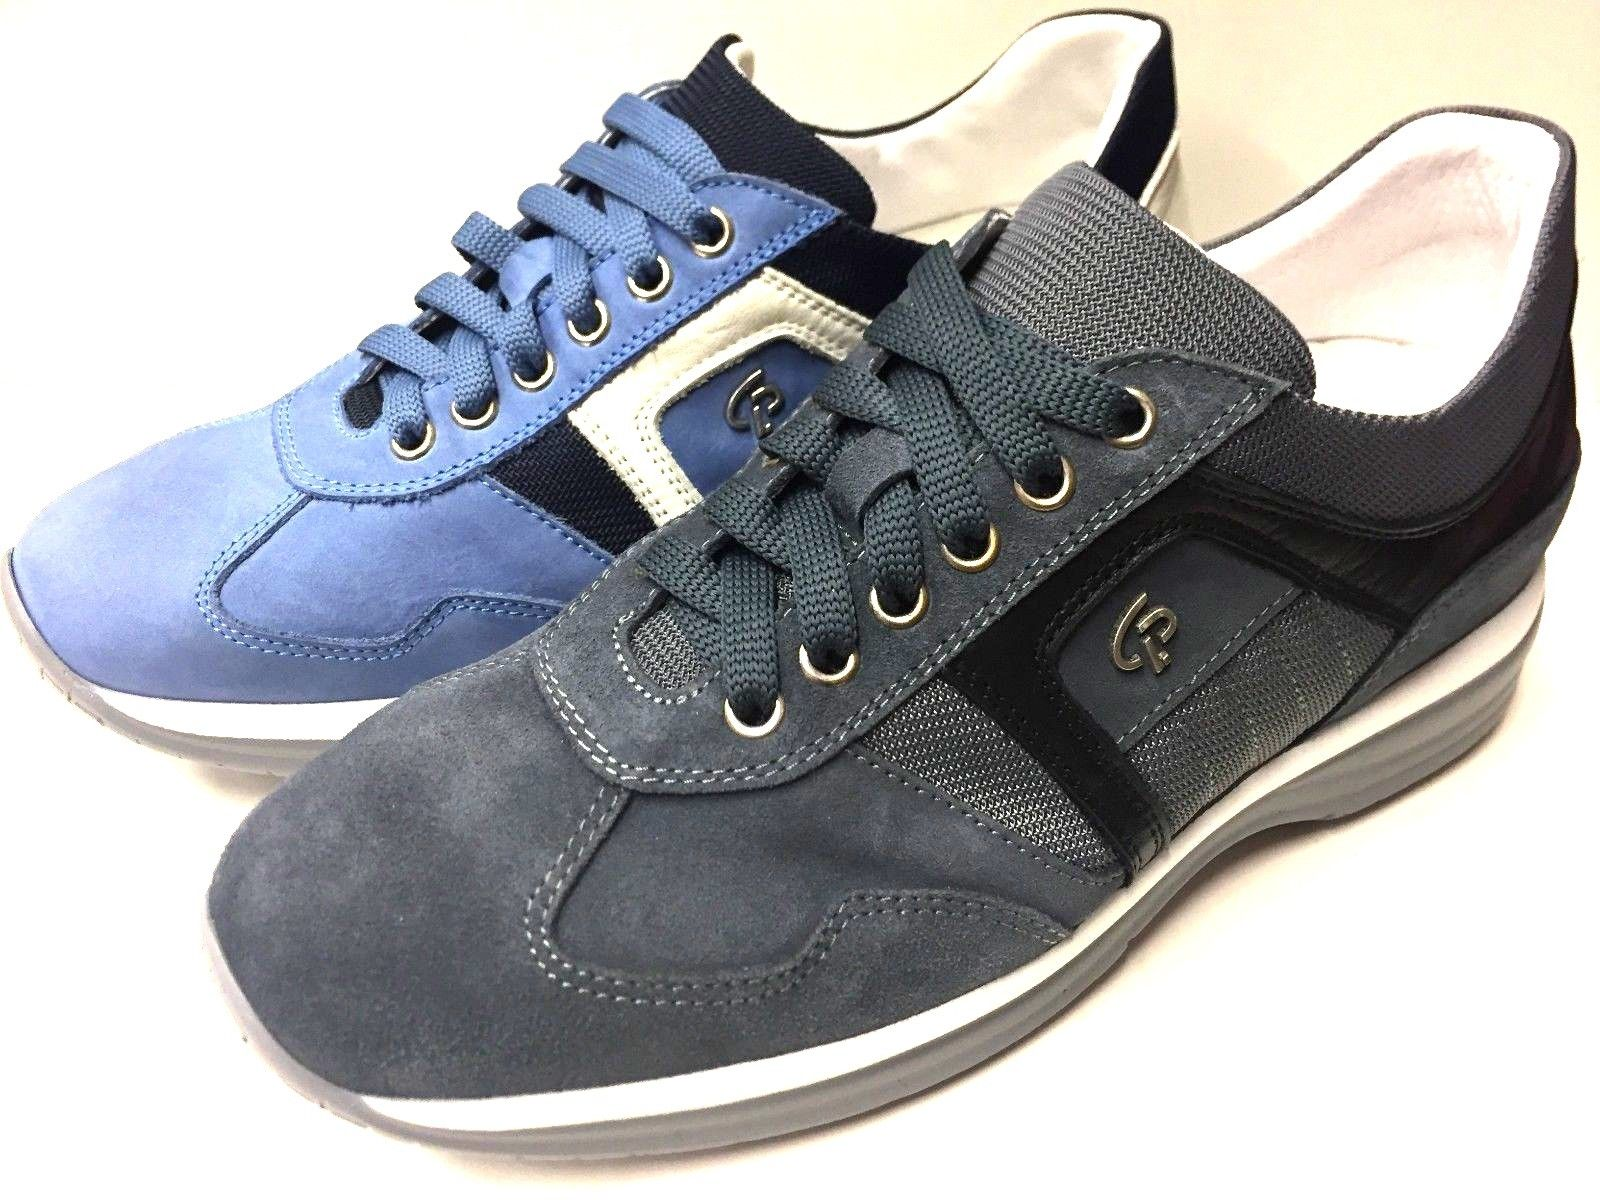 SCARPE SNEAKERS CASUAL UOMO CESARE PACIOTTI ORIGINALE EA08T PELLE SHOES P/E NEW